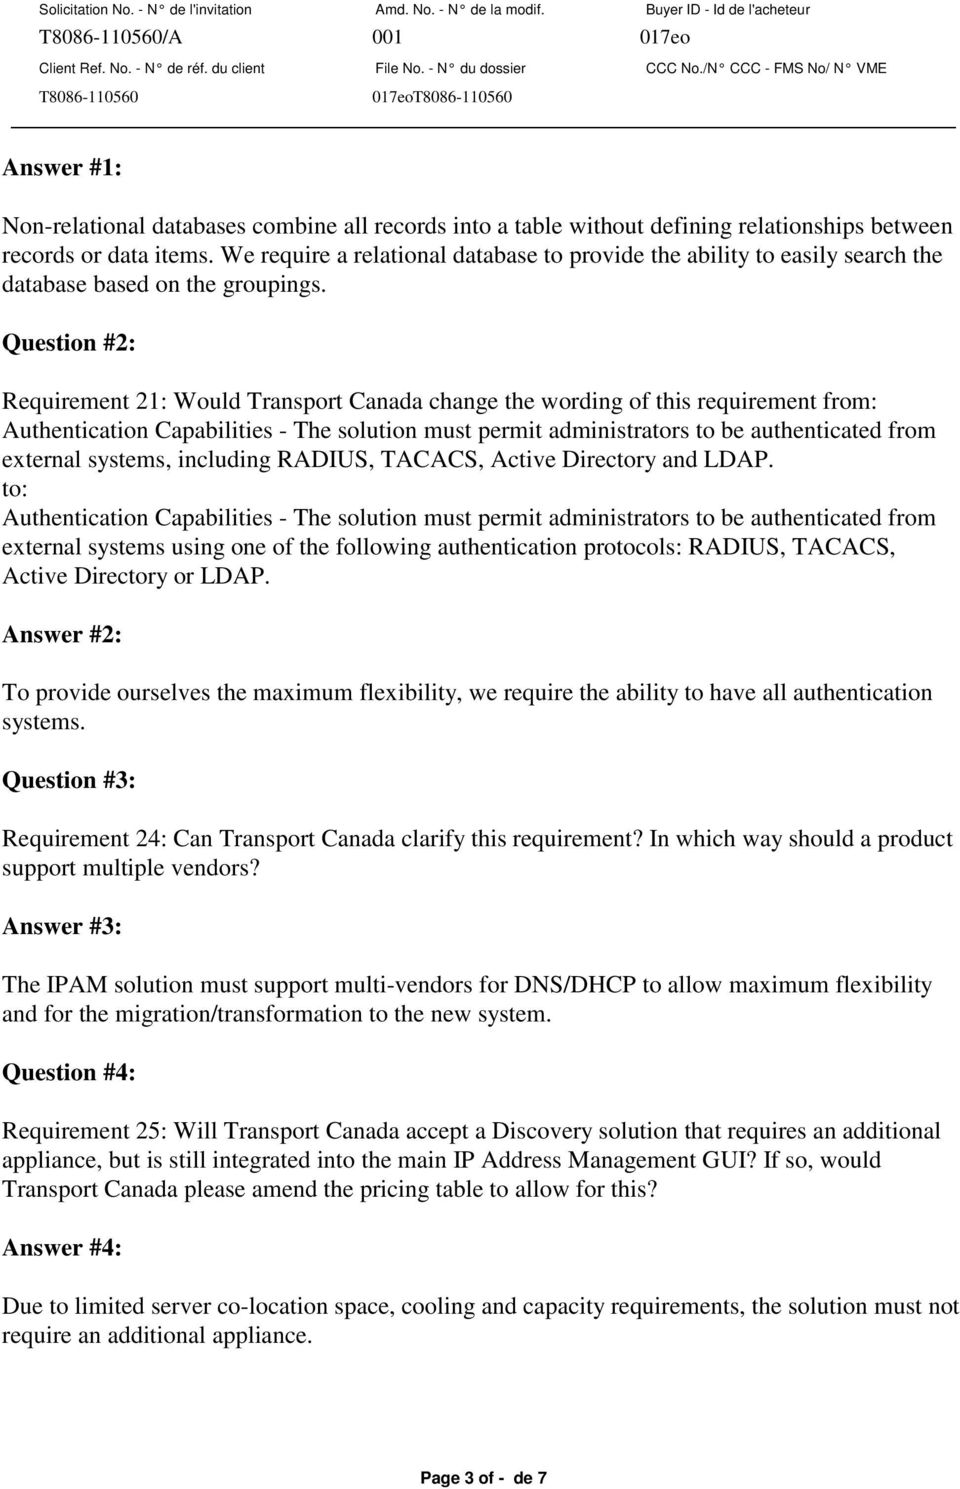 Question #2: Requirement 21: Would Transport Canada change the wording of this requirement from: Authentication Capabilities - The solution must permit administrators to be authenticated from